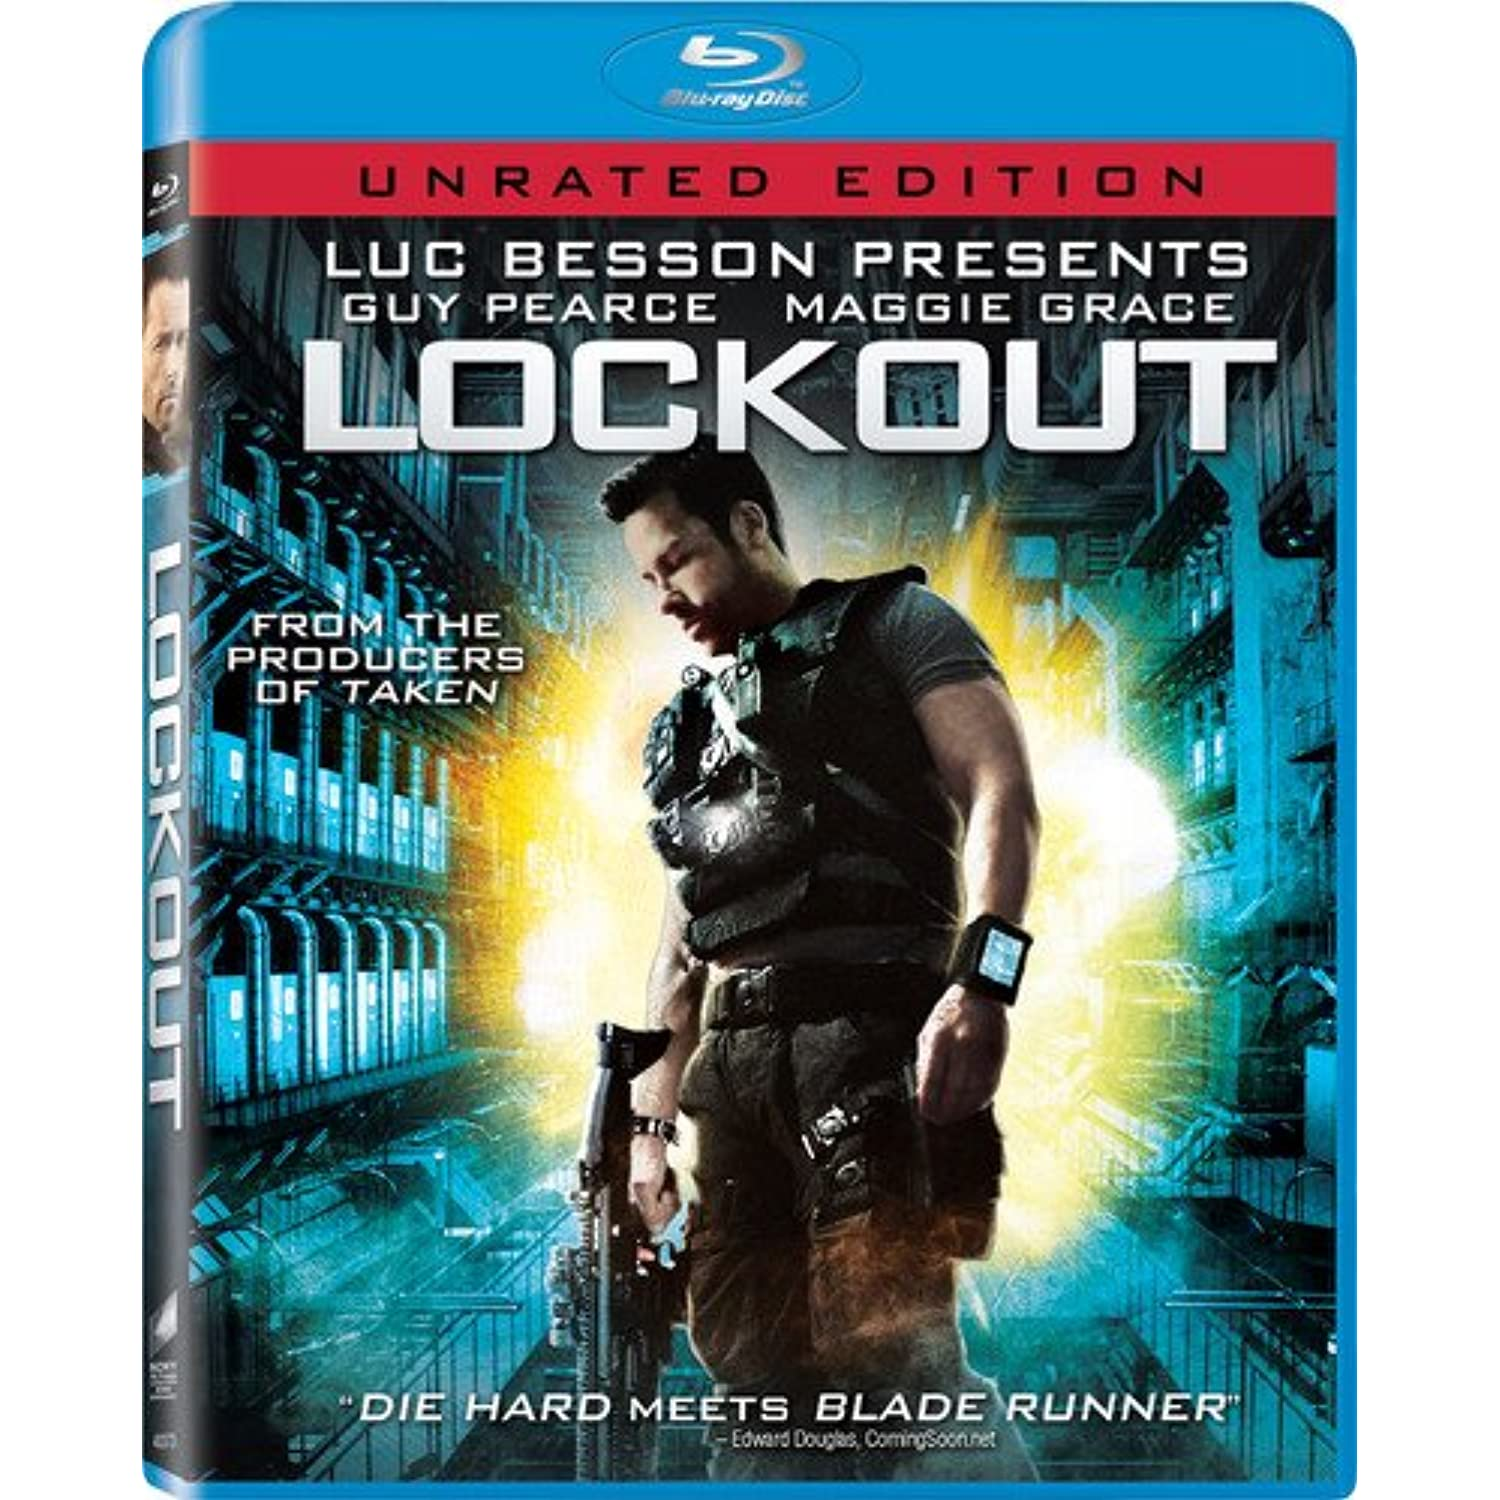 Lockout (Unrated Edition) [Blu-ray]